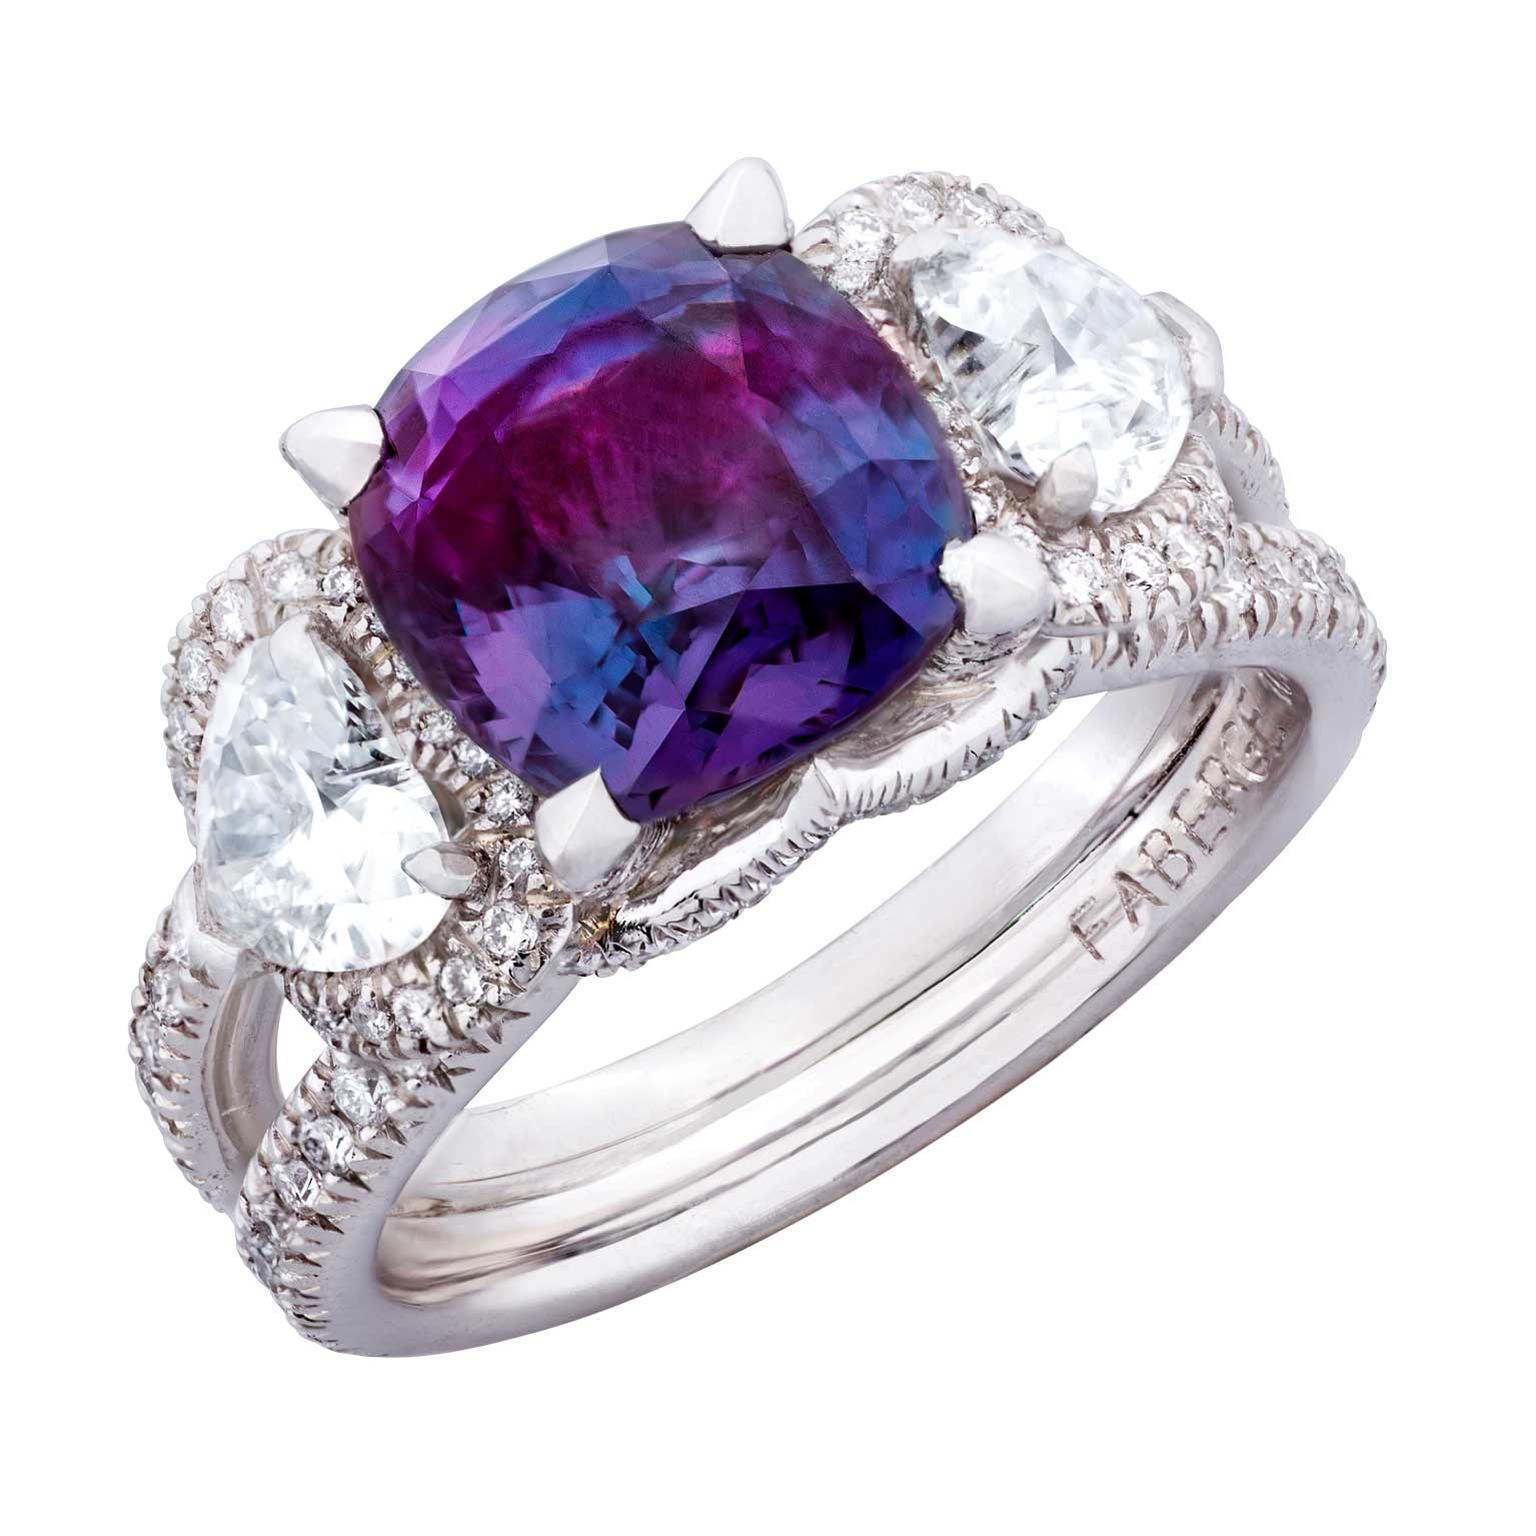 Fabergé Devotion alexandrite ring